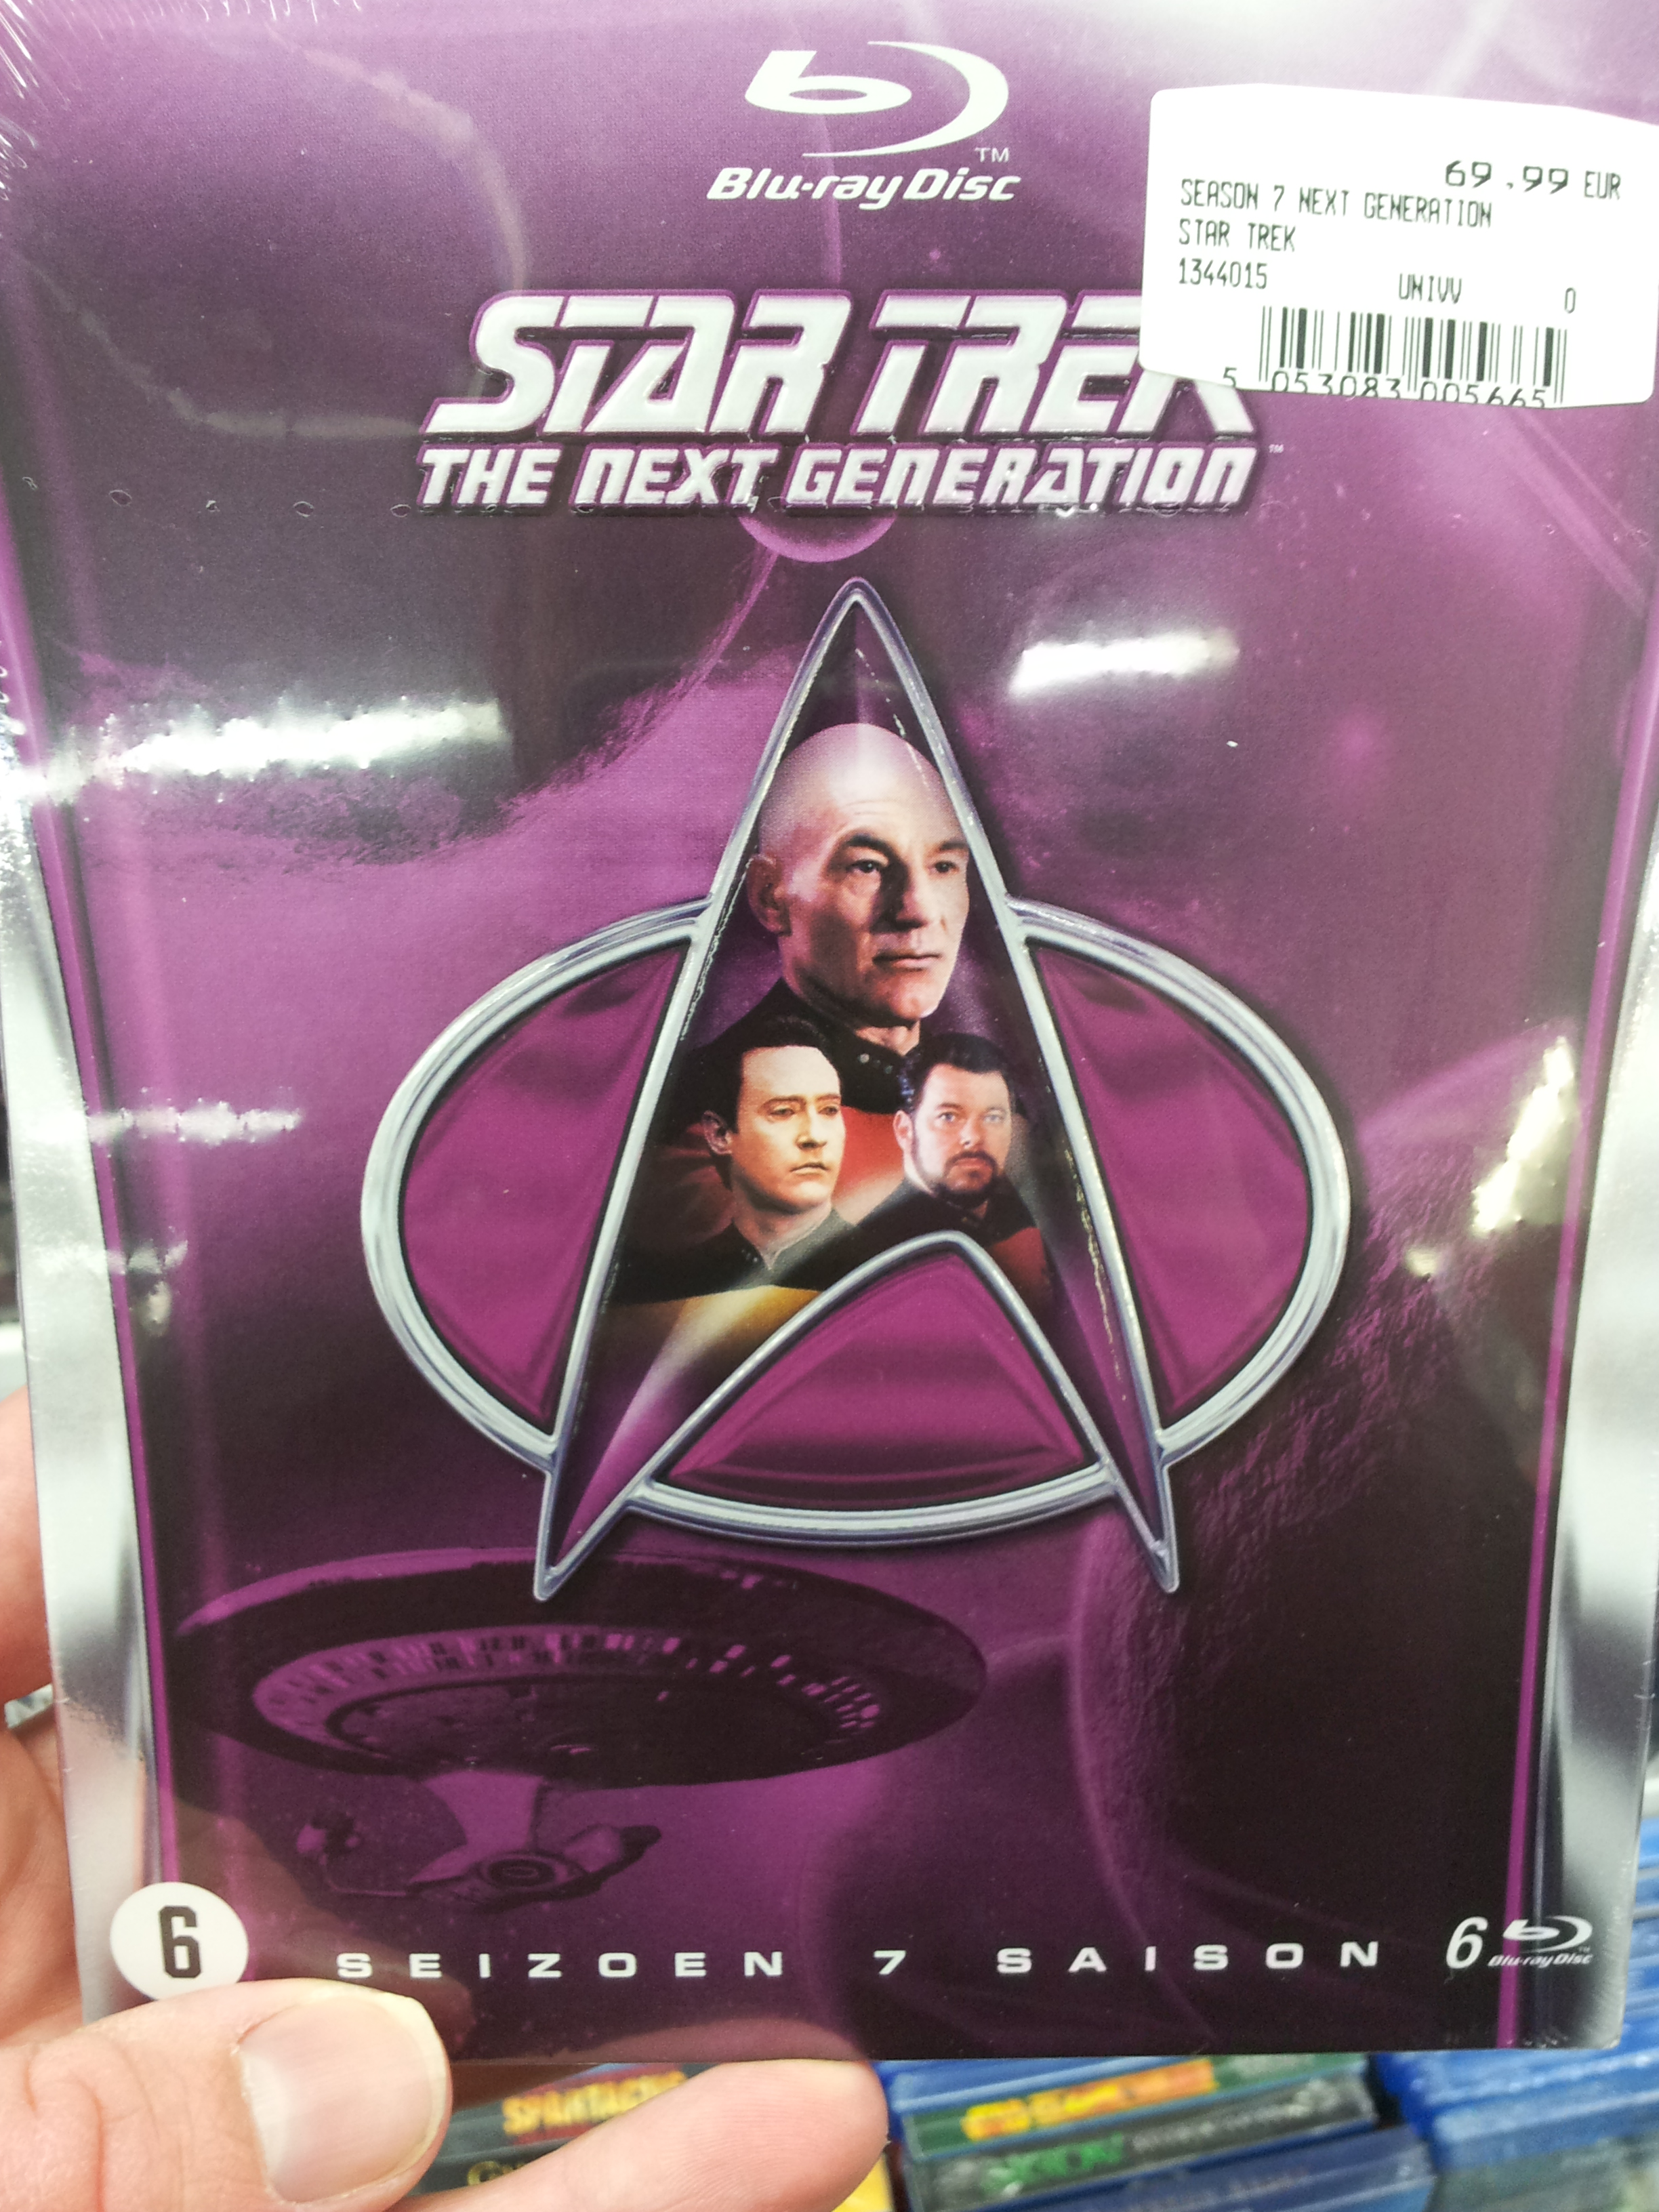 Star Trek TNG Season 7 Blu Ray cover of boxset